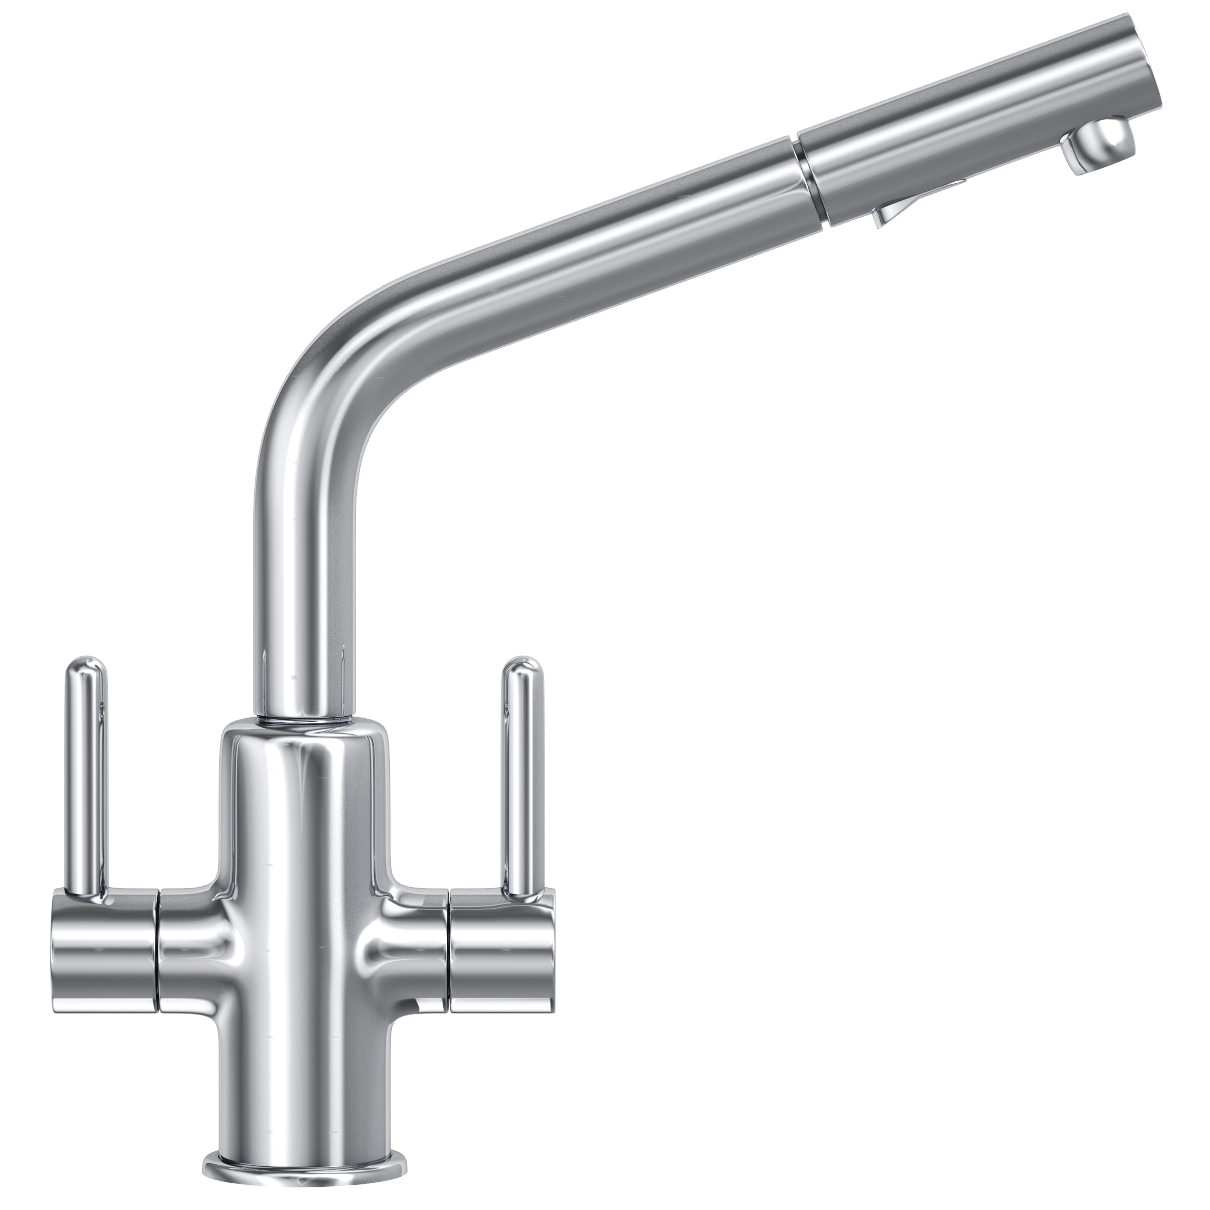 White Kitchen Mixer Tap franke maris pull out spray kitchen sink mixer tap chrome | 1150363793